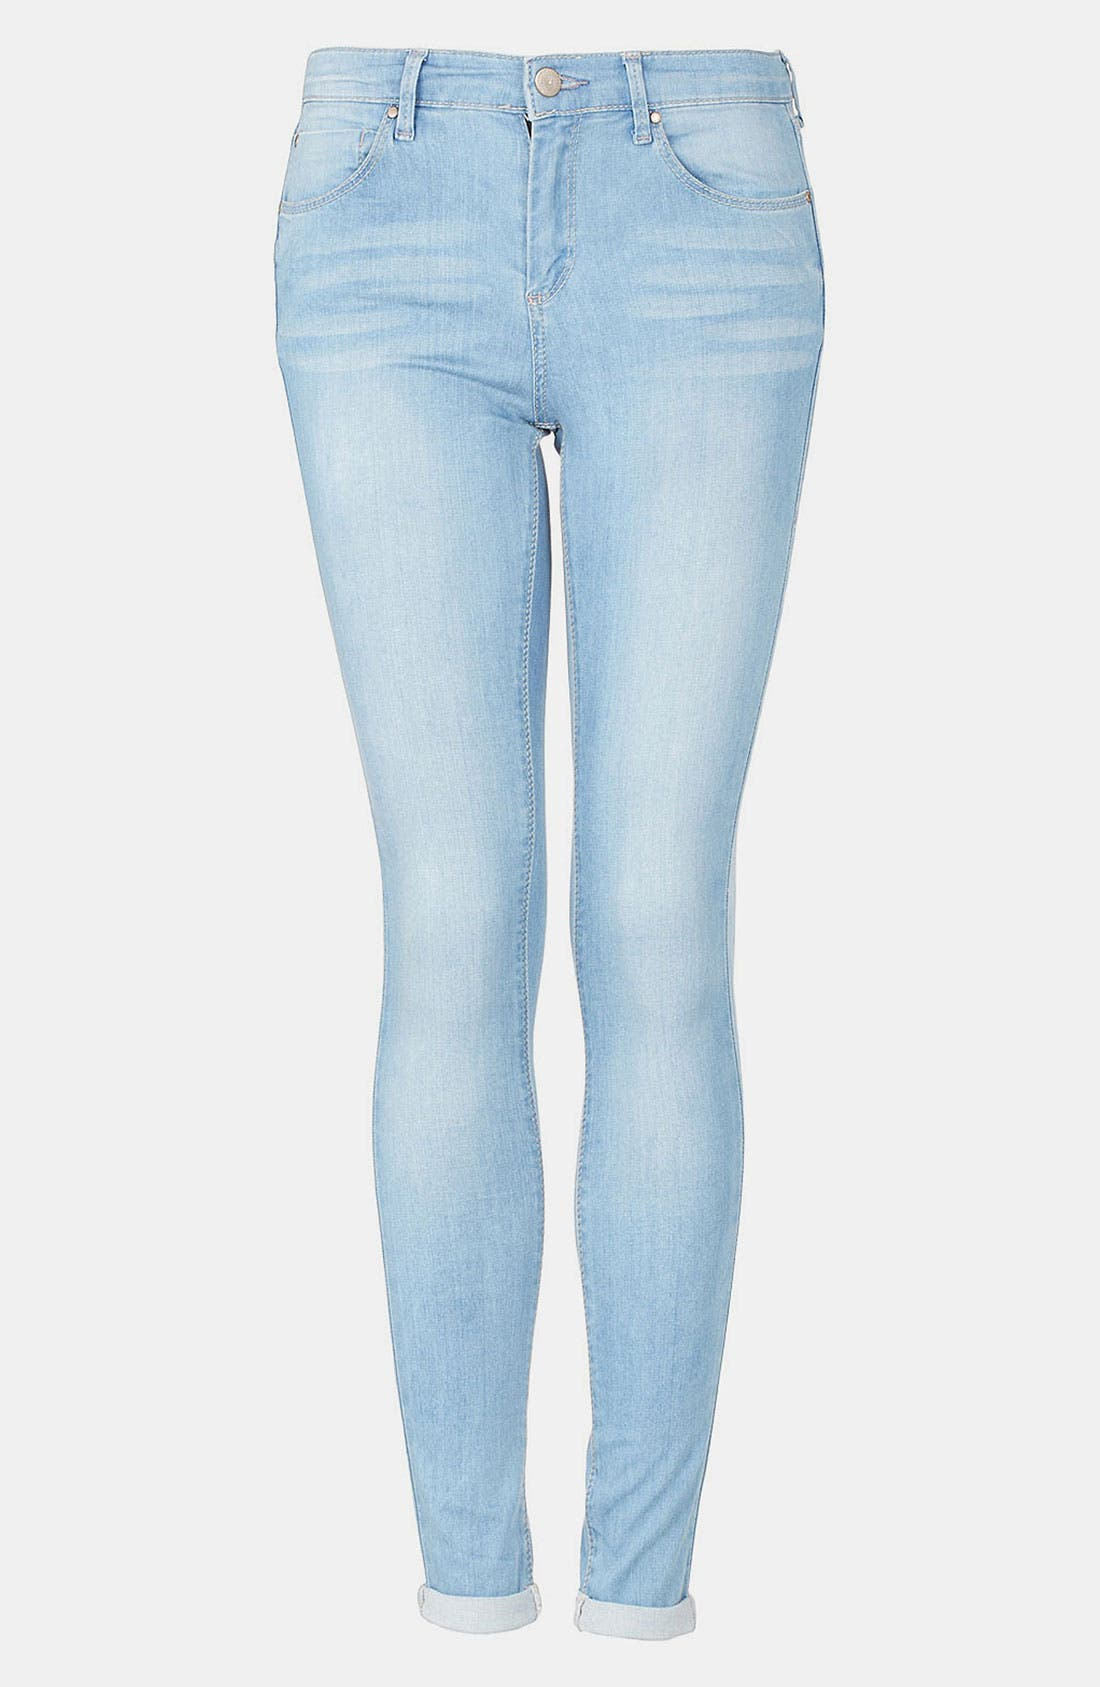 Alternate Image 1 Selected - Topshop Moto 'Leigh' Bleach Wash Skinny Jeans (Long)